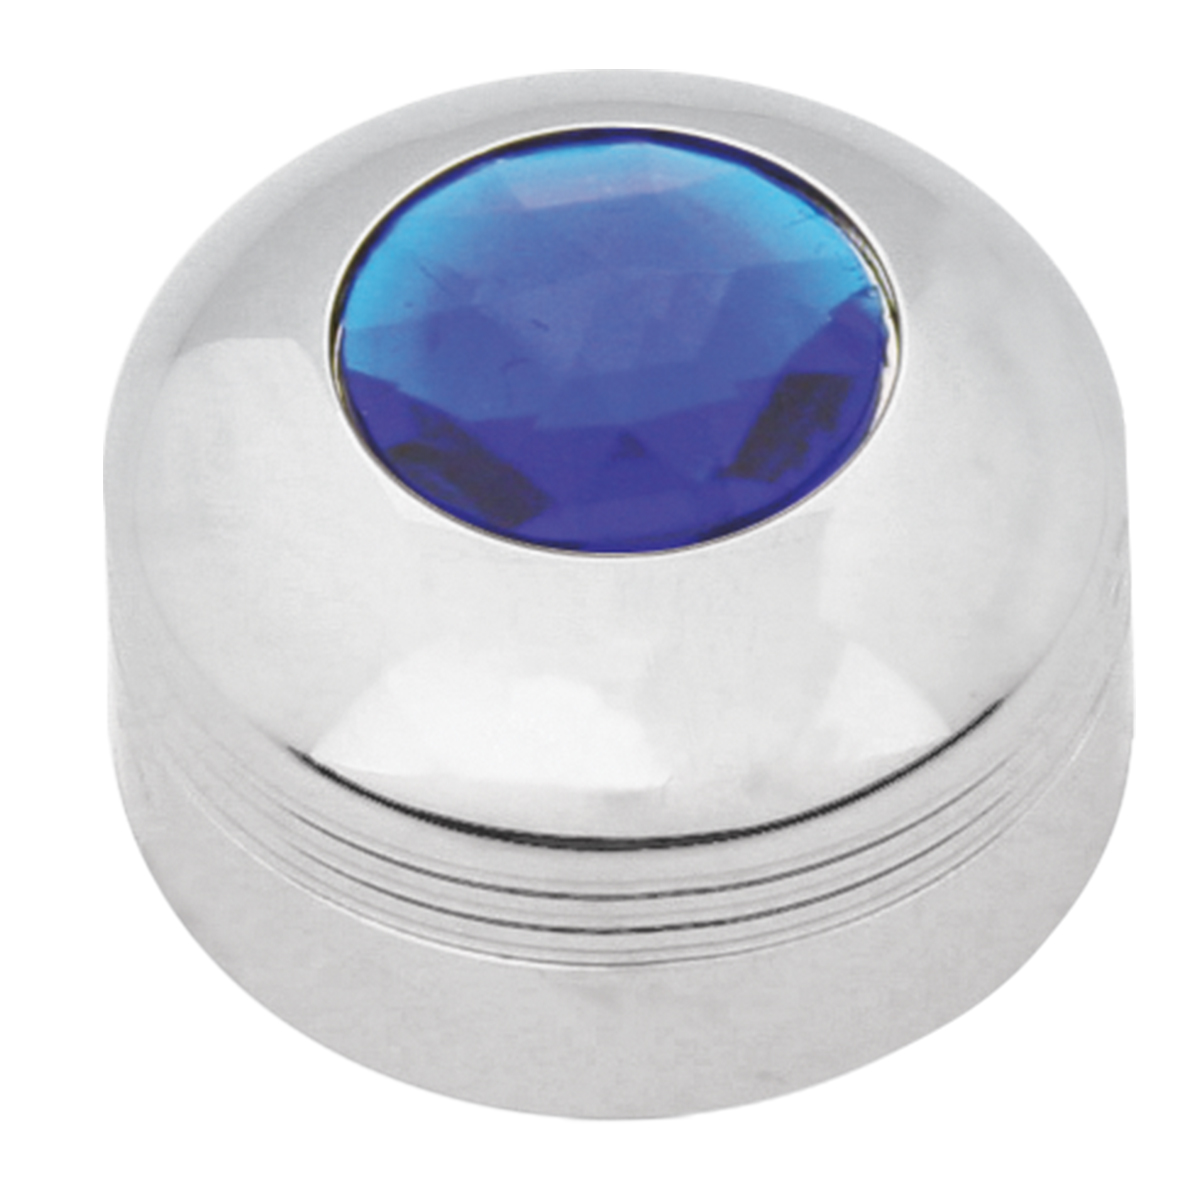 69051 Chrome Plastic A/C Know with Blue Plastic Jewel for KW